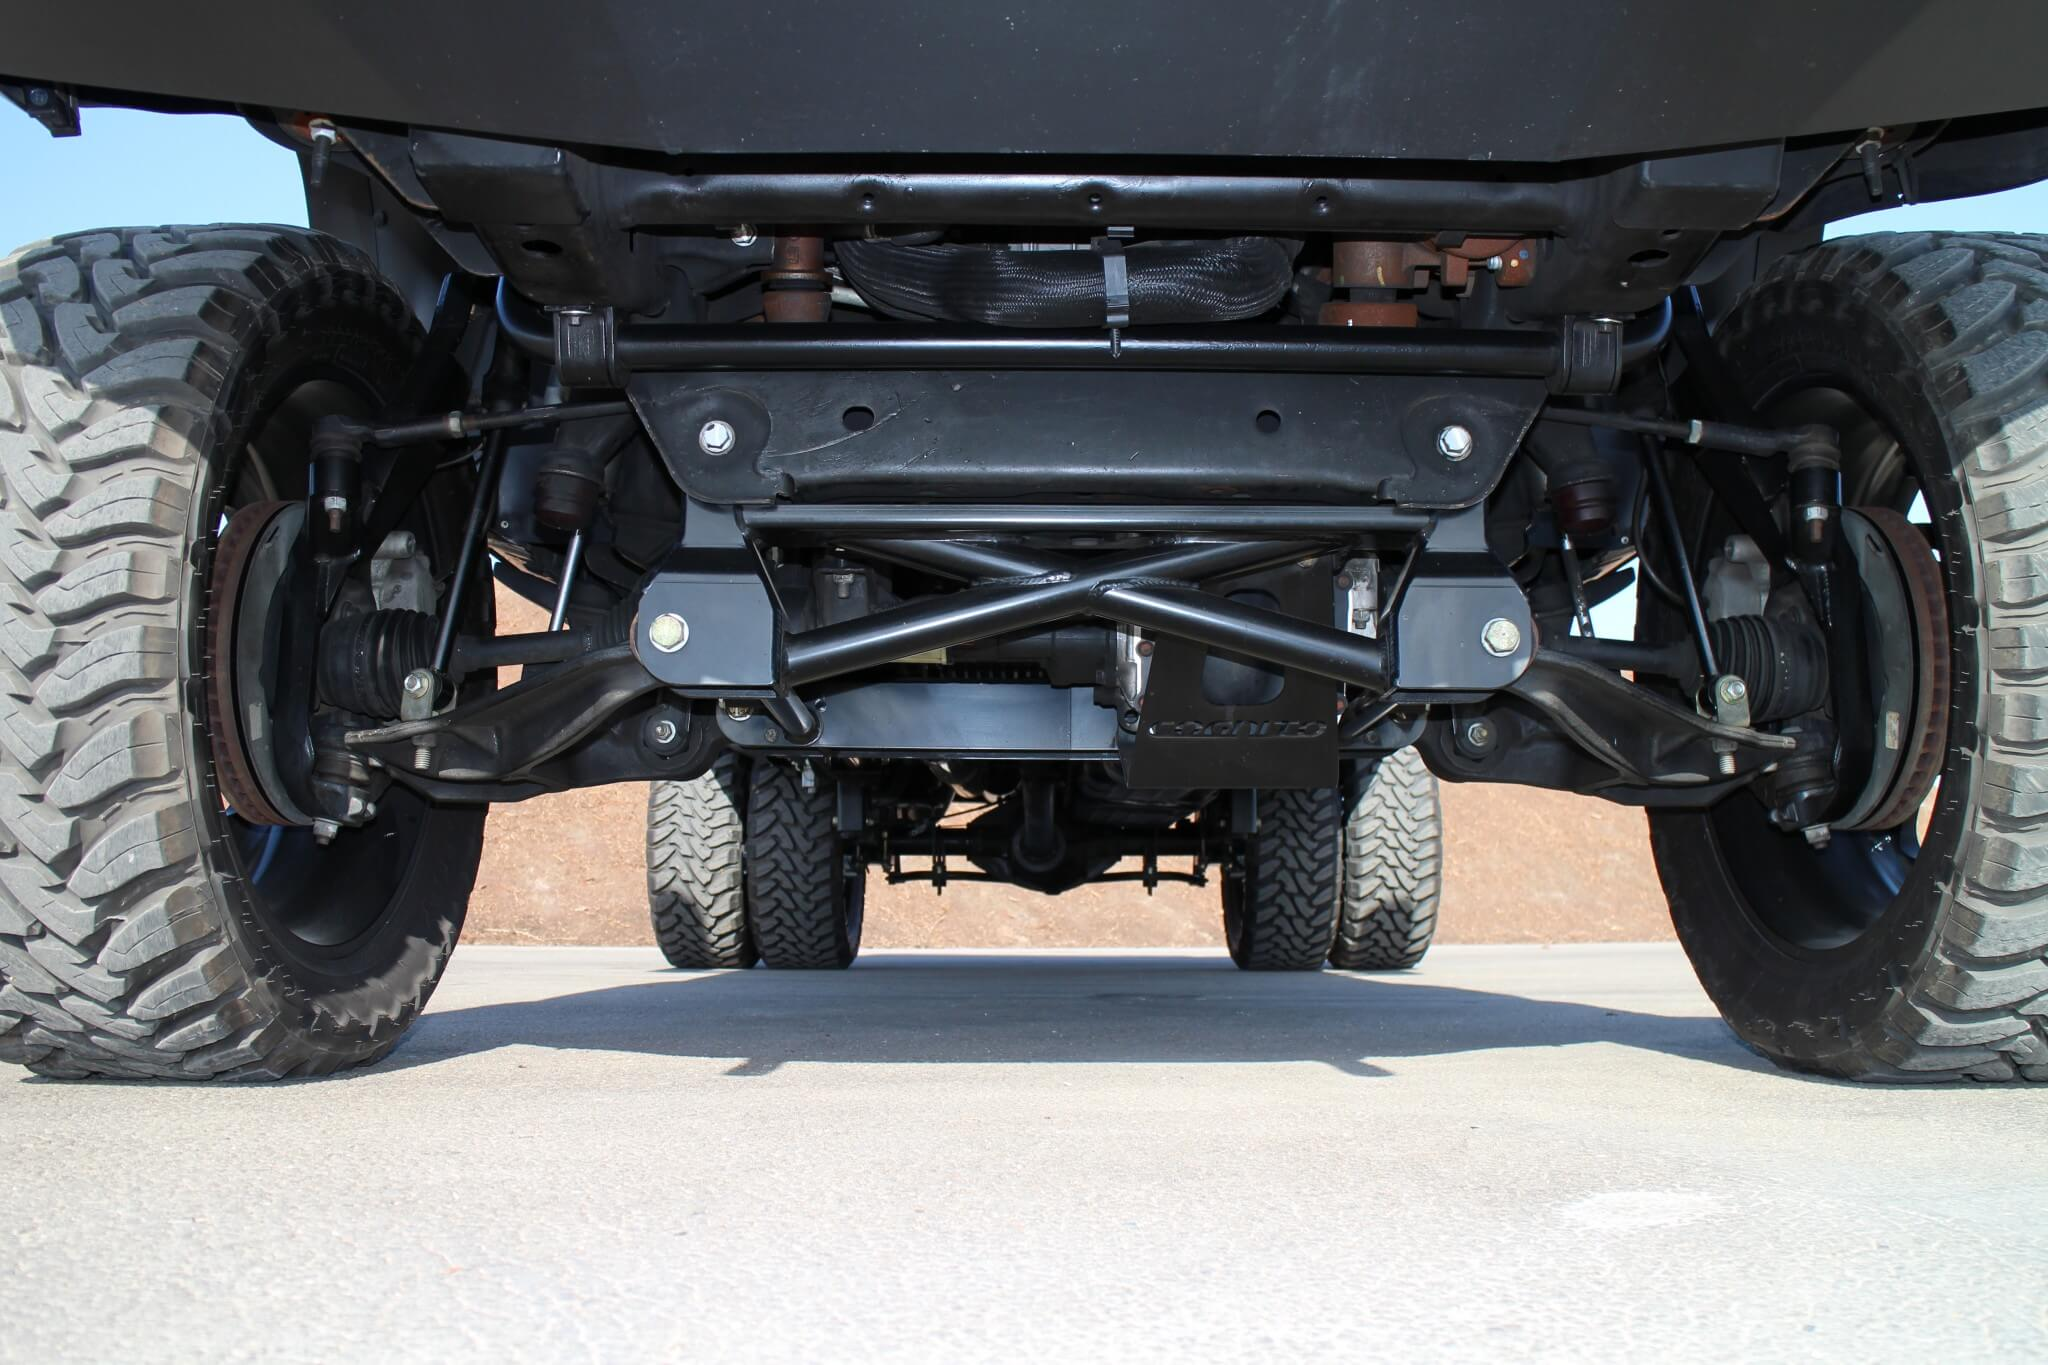 Underneath, an Cognito 7-inch lift kit was installed to elevate the Silverado to its new heights. The kit includes a front suspension drop cradle that lowers the suspension pickup points, as well as upper control arms, differential relocating mounting bracket, a beefier sway bar and longer end links.